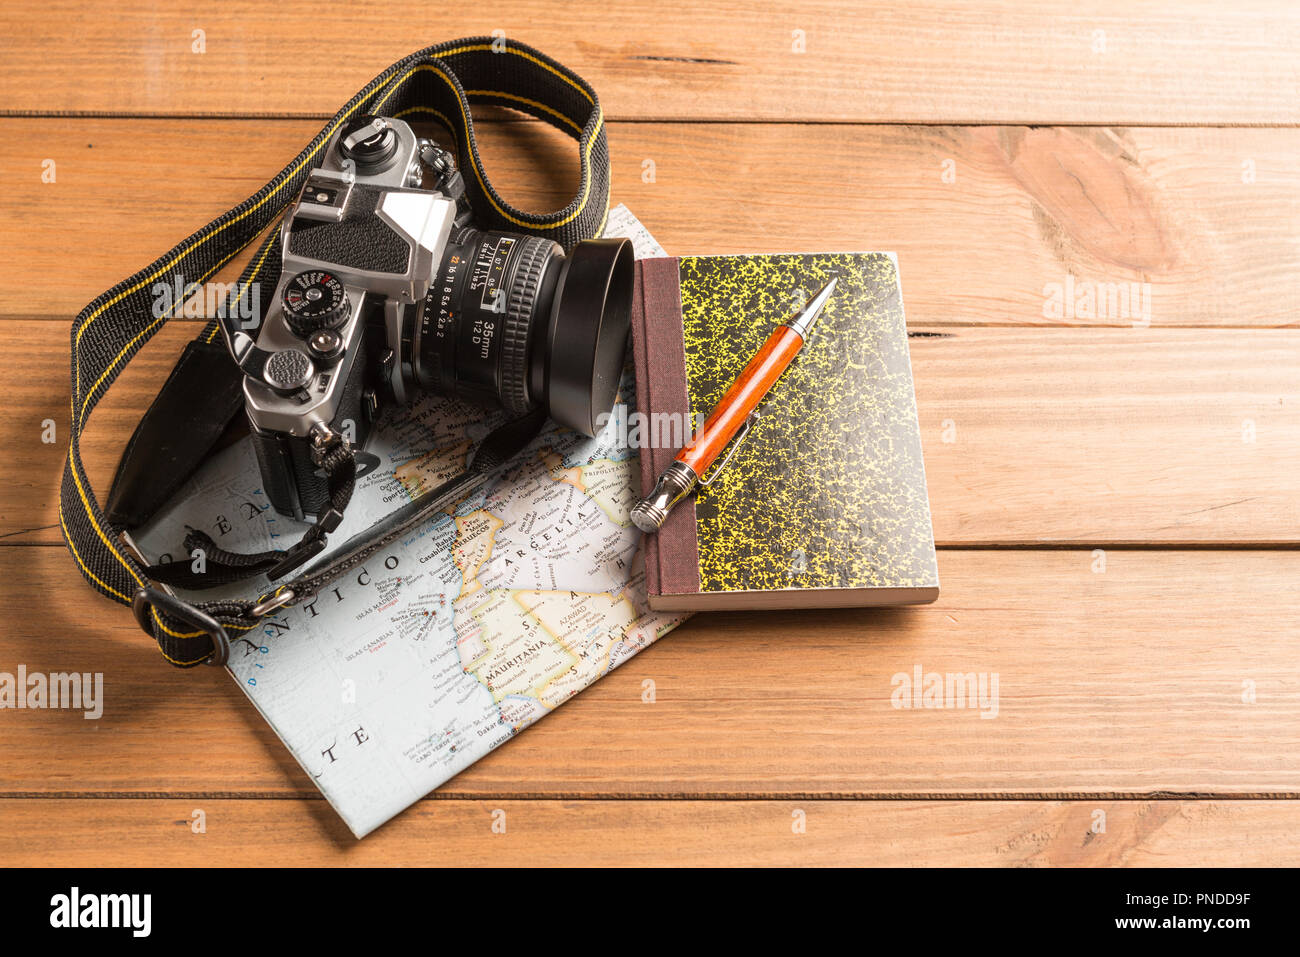 Travel concept. Camera, map, notebook and ball pen on wooden table - Stock Image